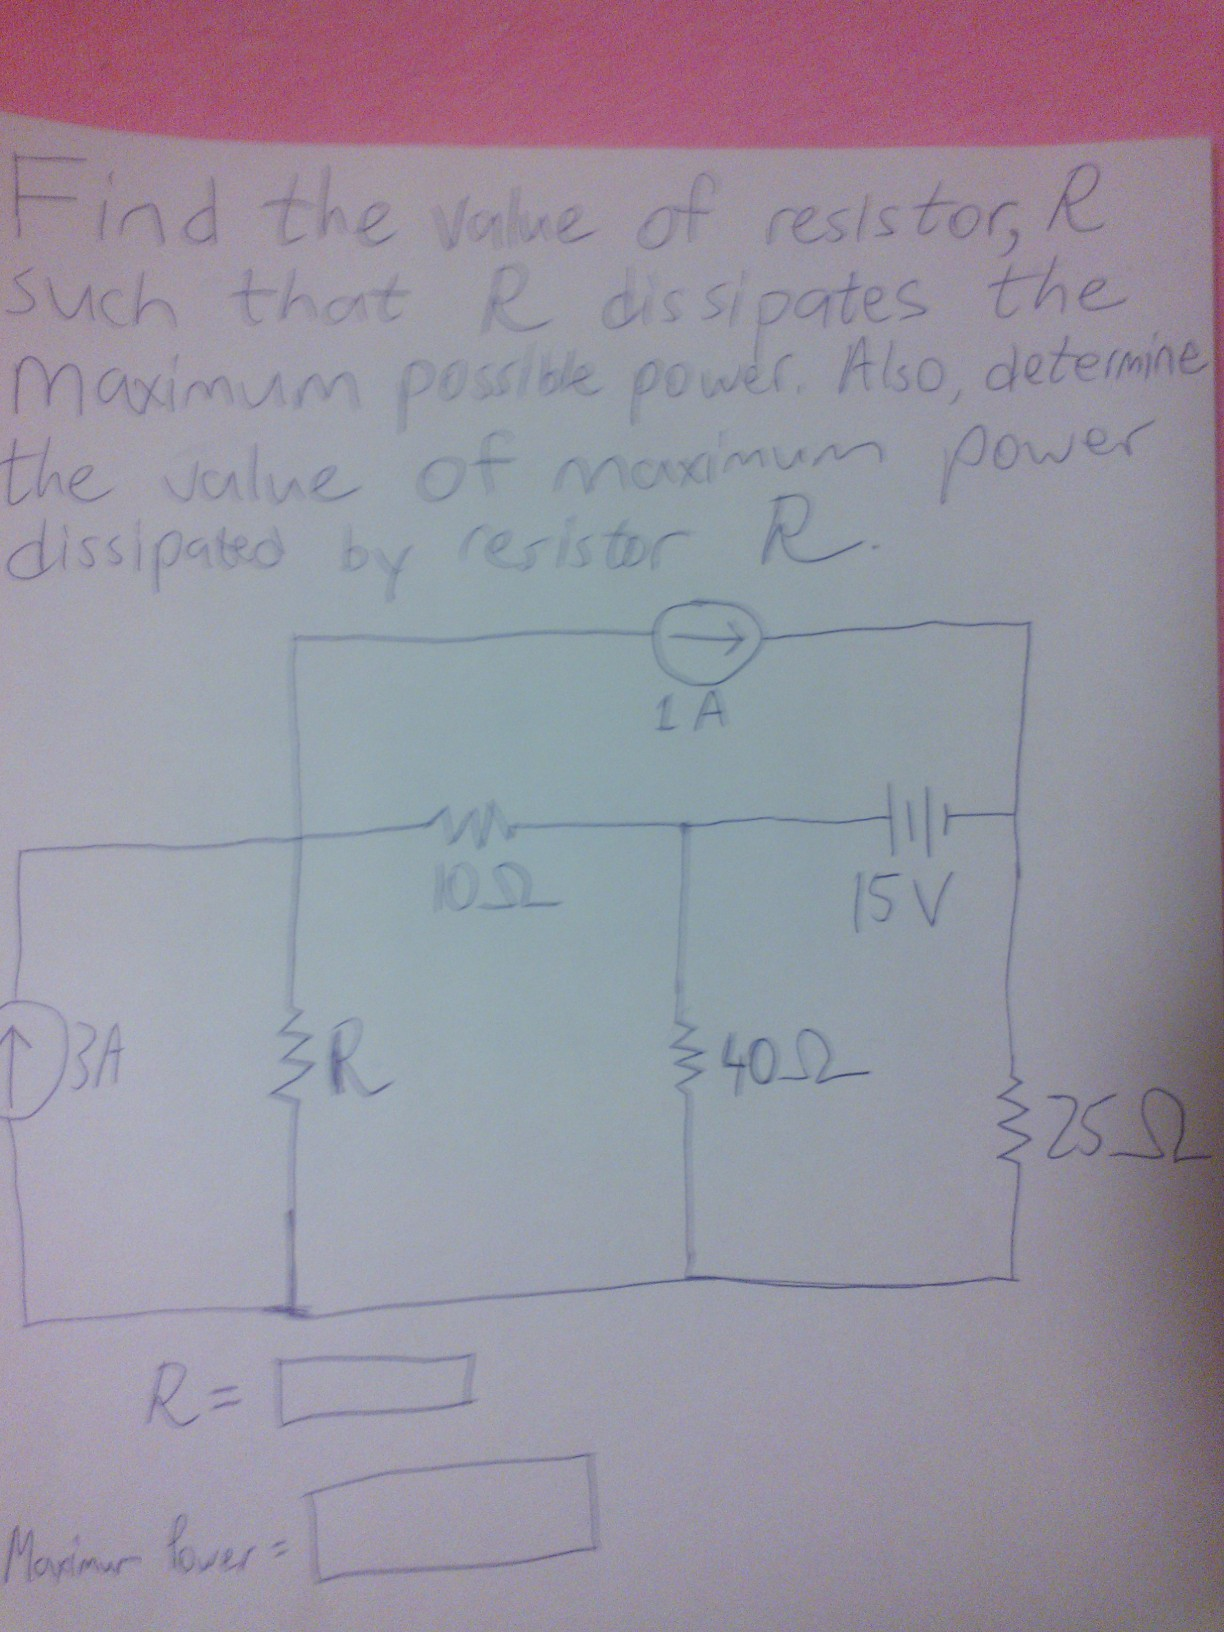 Find the value of resistor, R such that R dissipat